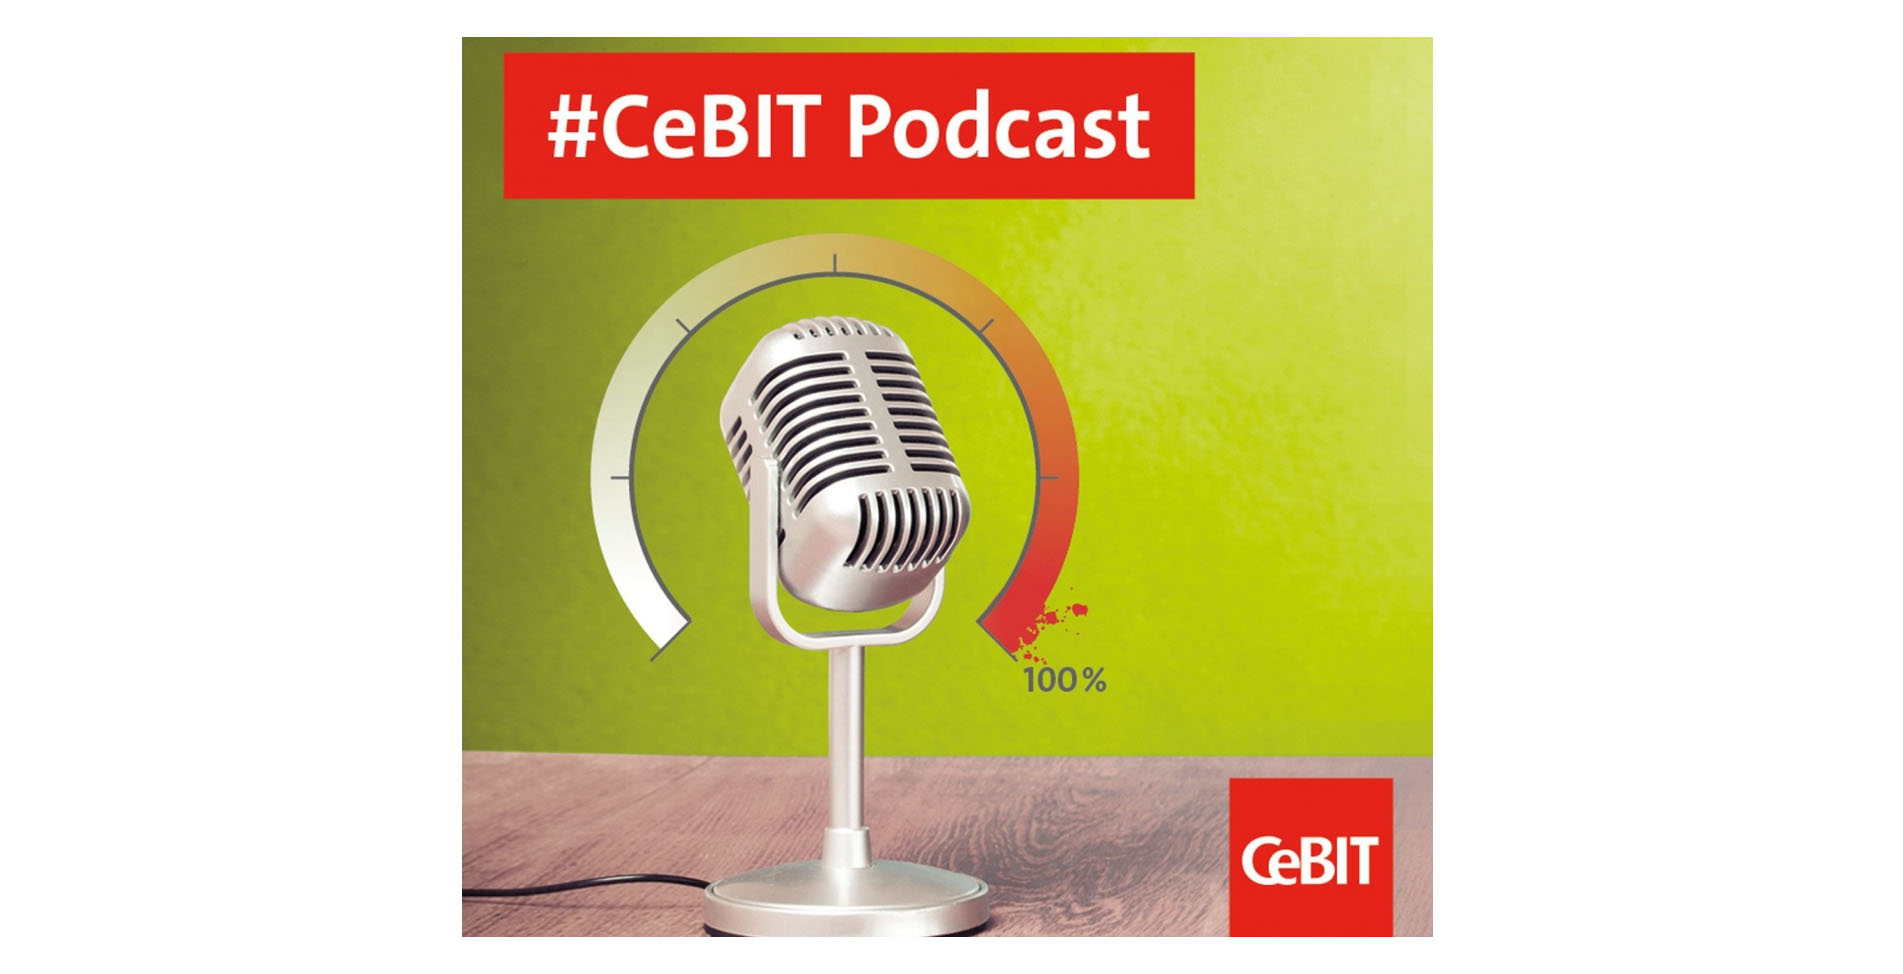 CeBIT Podcast